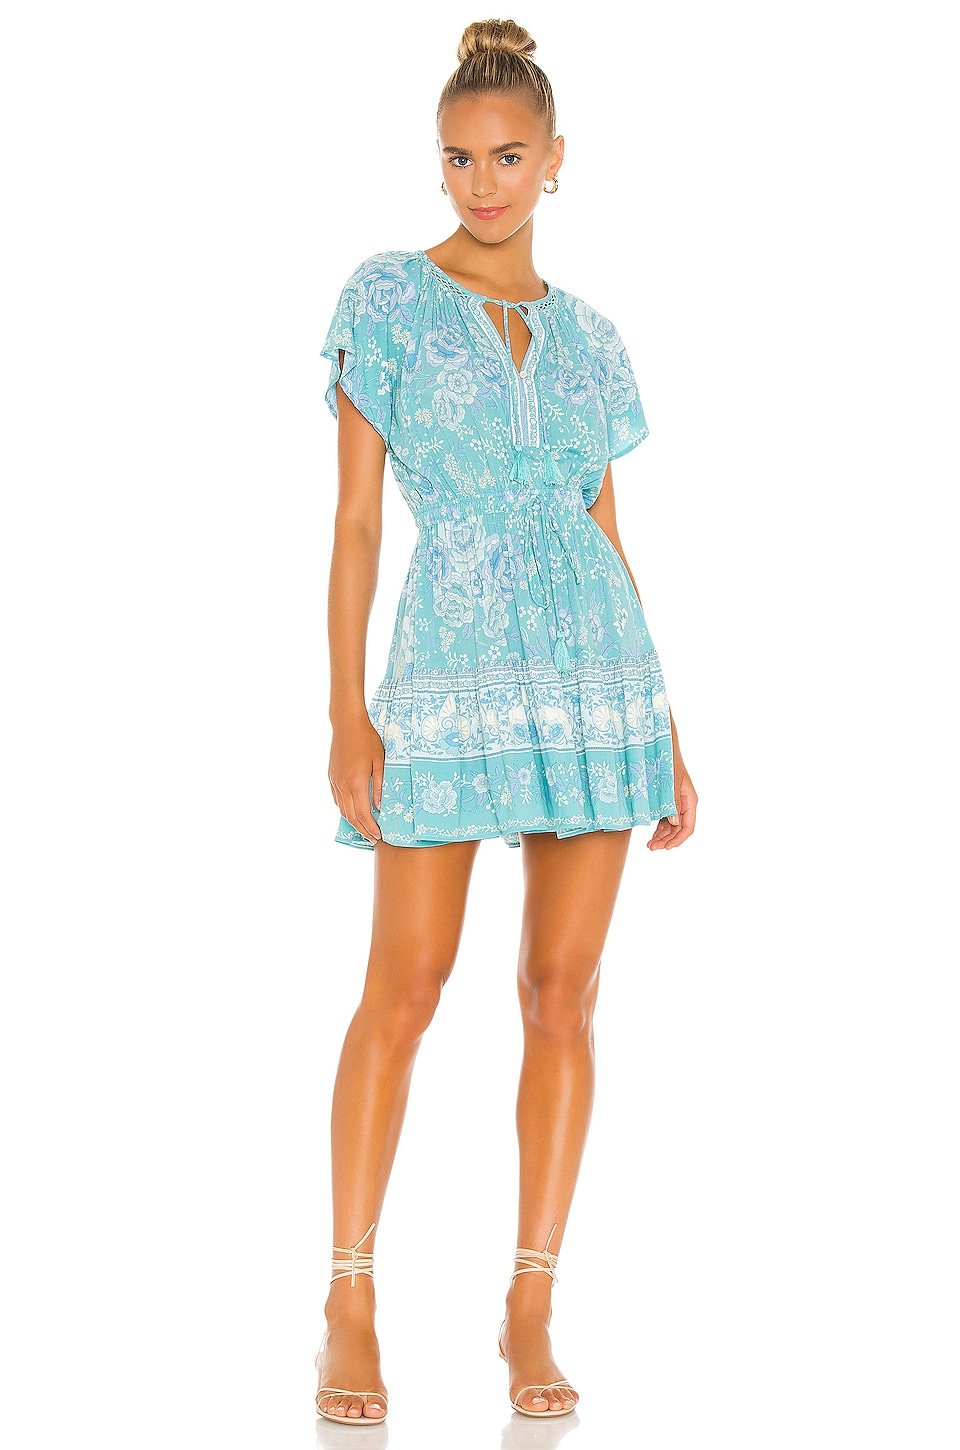 X REVOLVE Mystic Playdress, view 2, click to view large image.